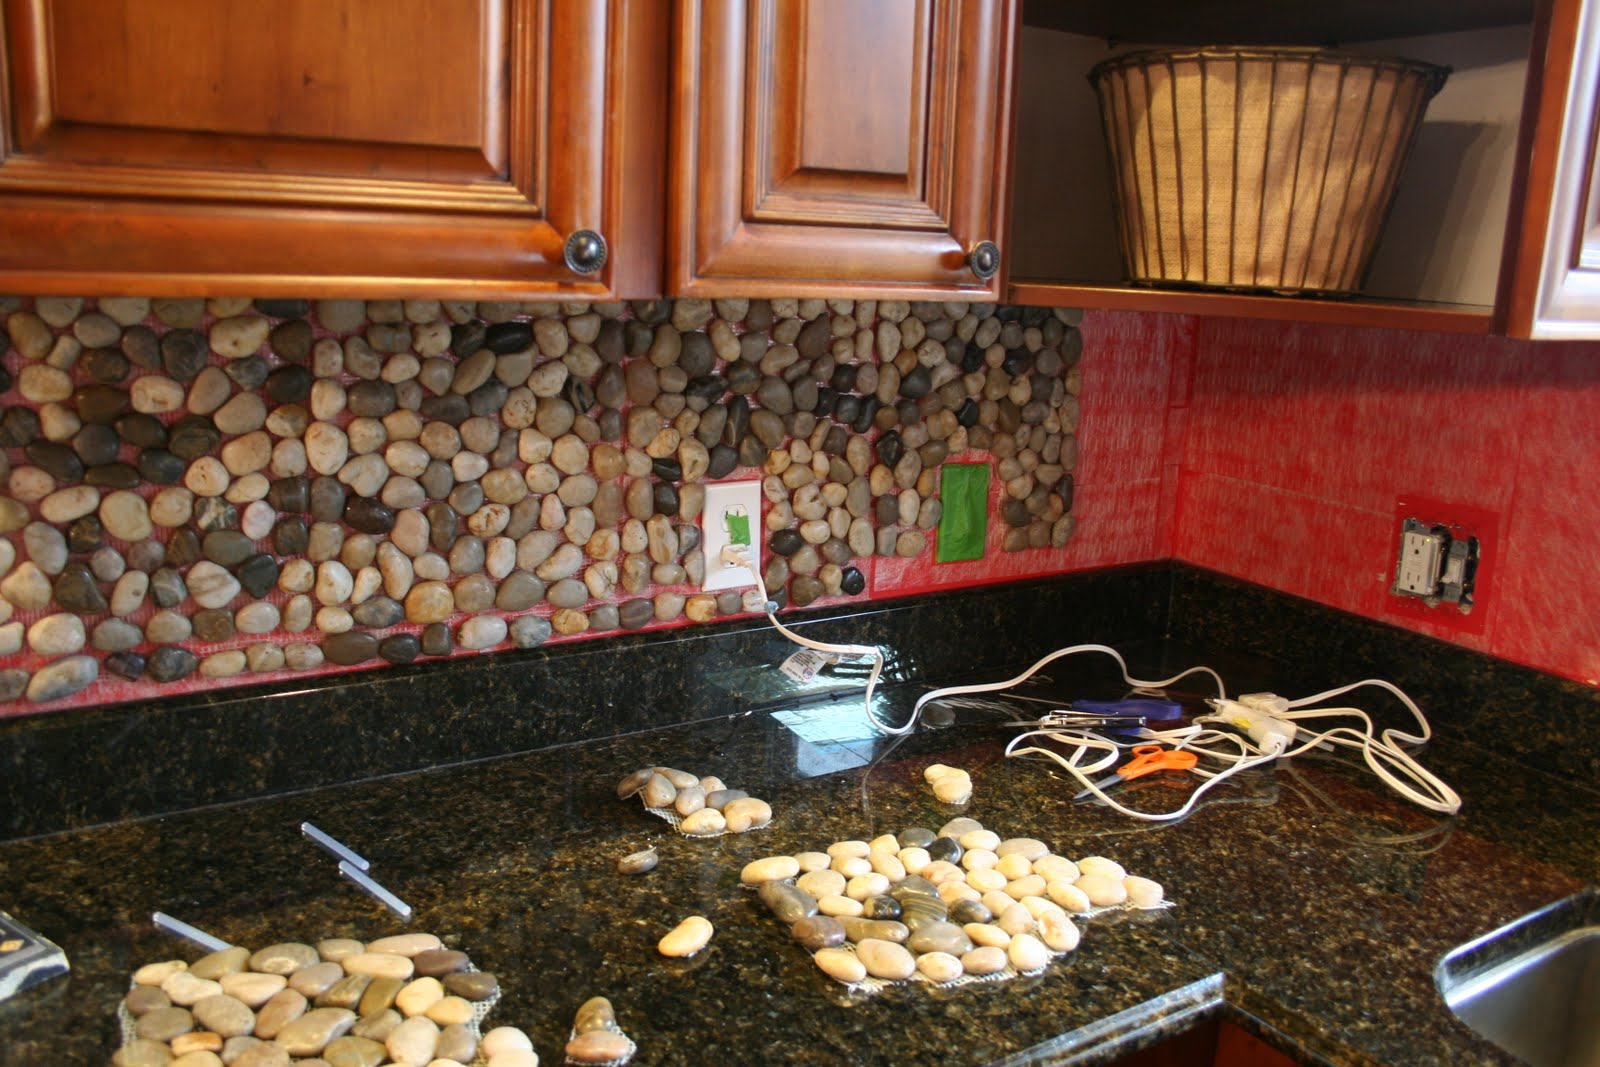 Garden stone kitchen backsplash tutorial how to backsplash home stories a to z - Kitchen backsplash ideas ...